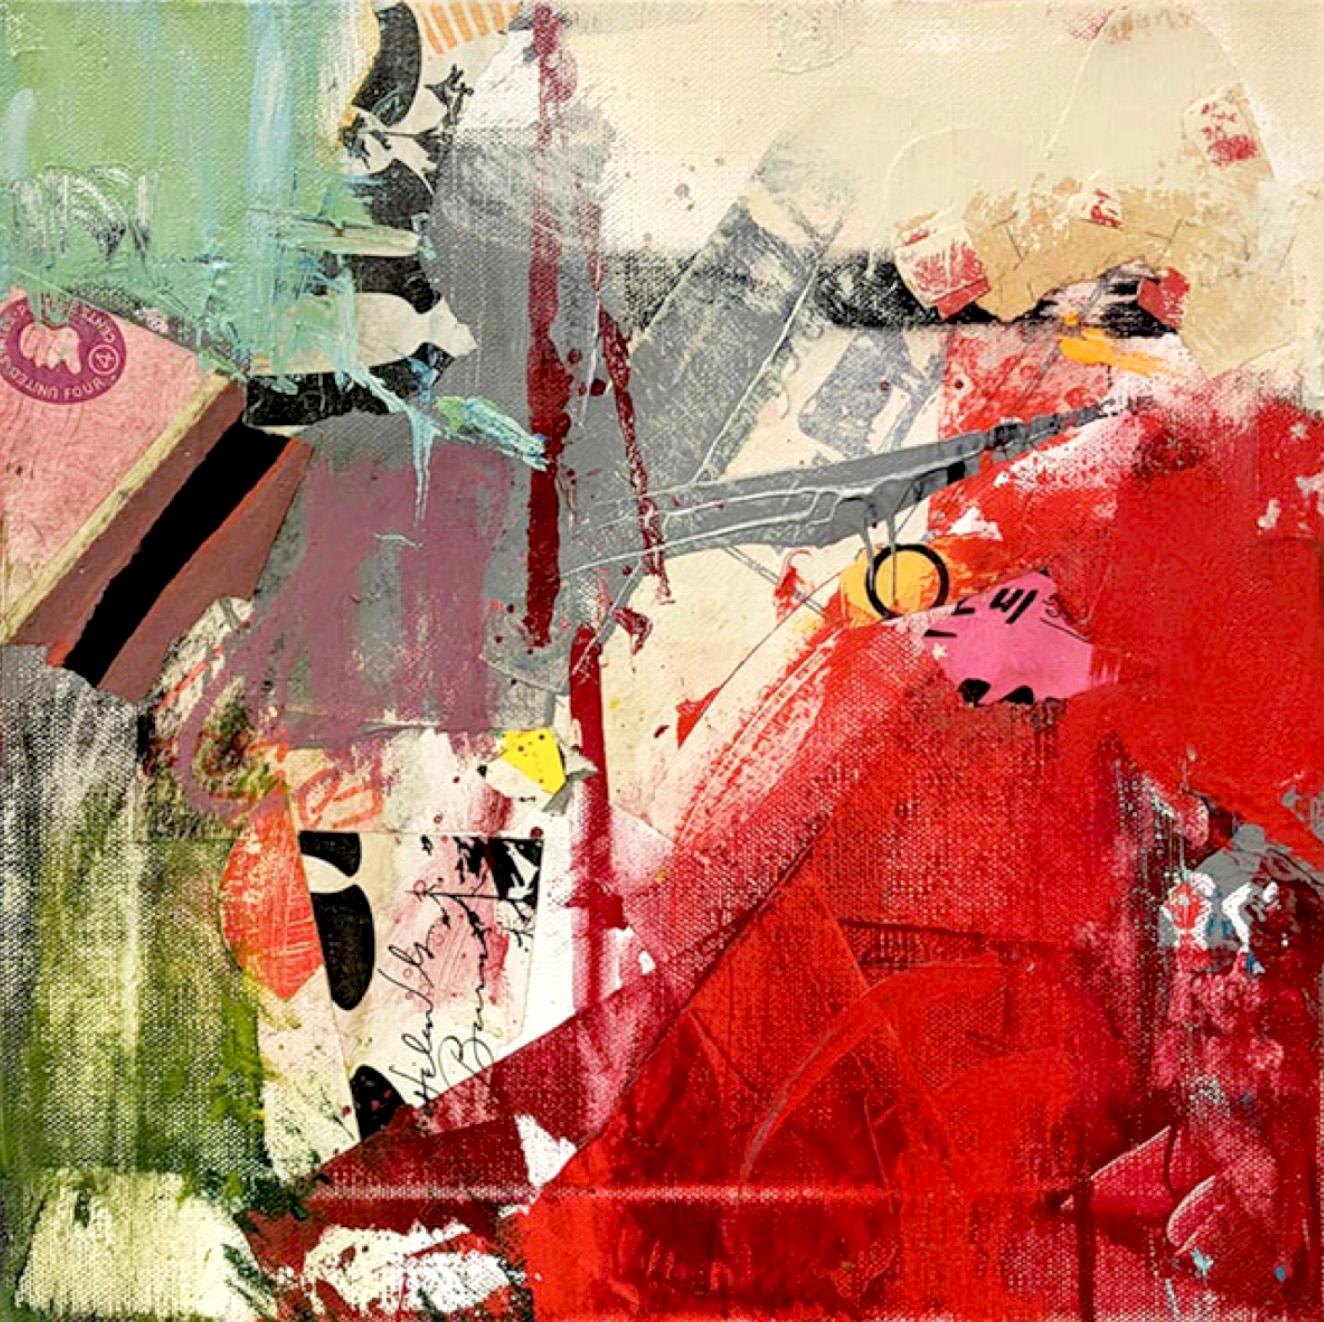 CLIMB - red abstract painting